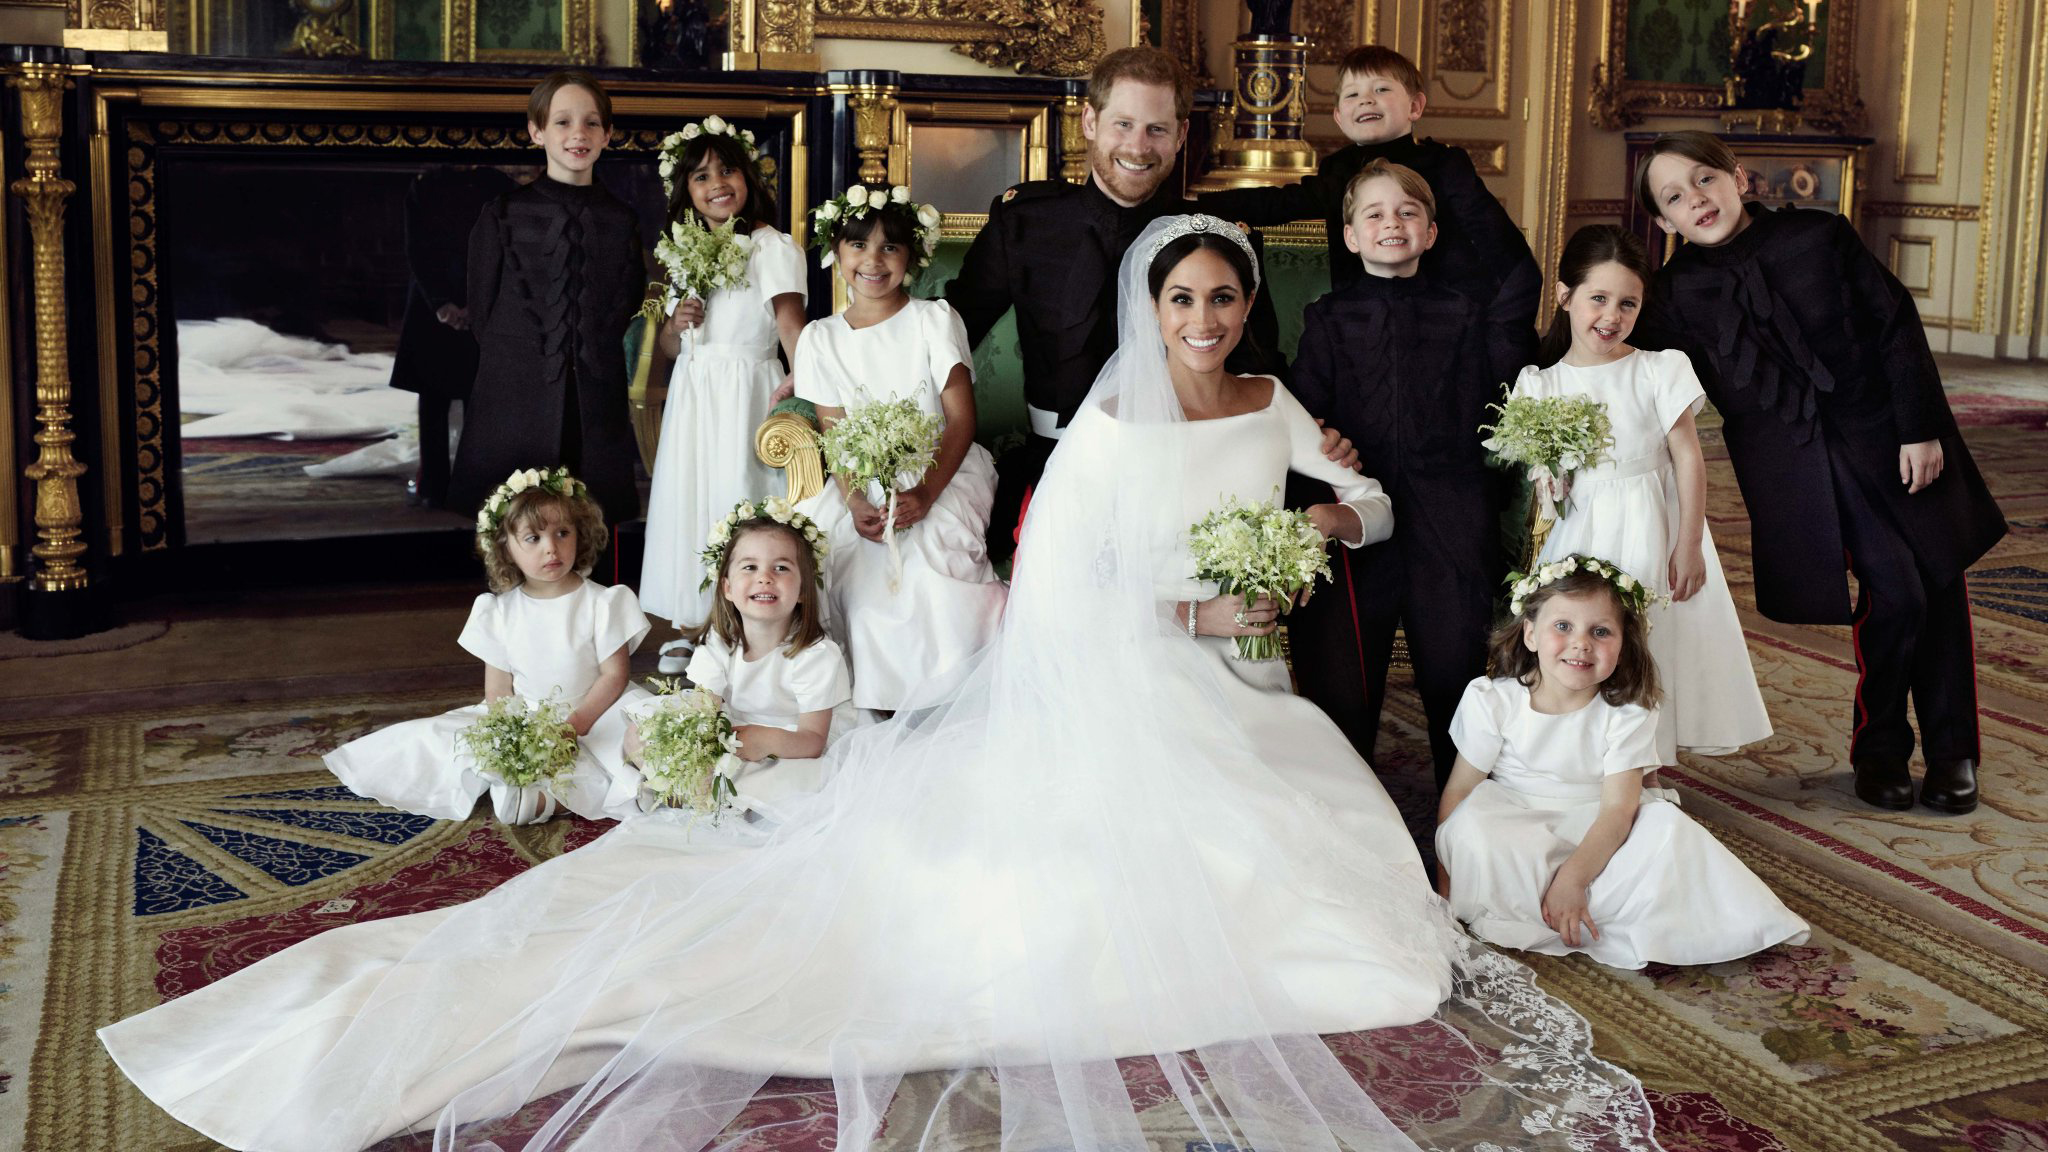 Megan And Harry Wedding.Royal Wedding Harry And Meghan Release Official Photos Cnn Style